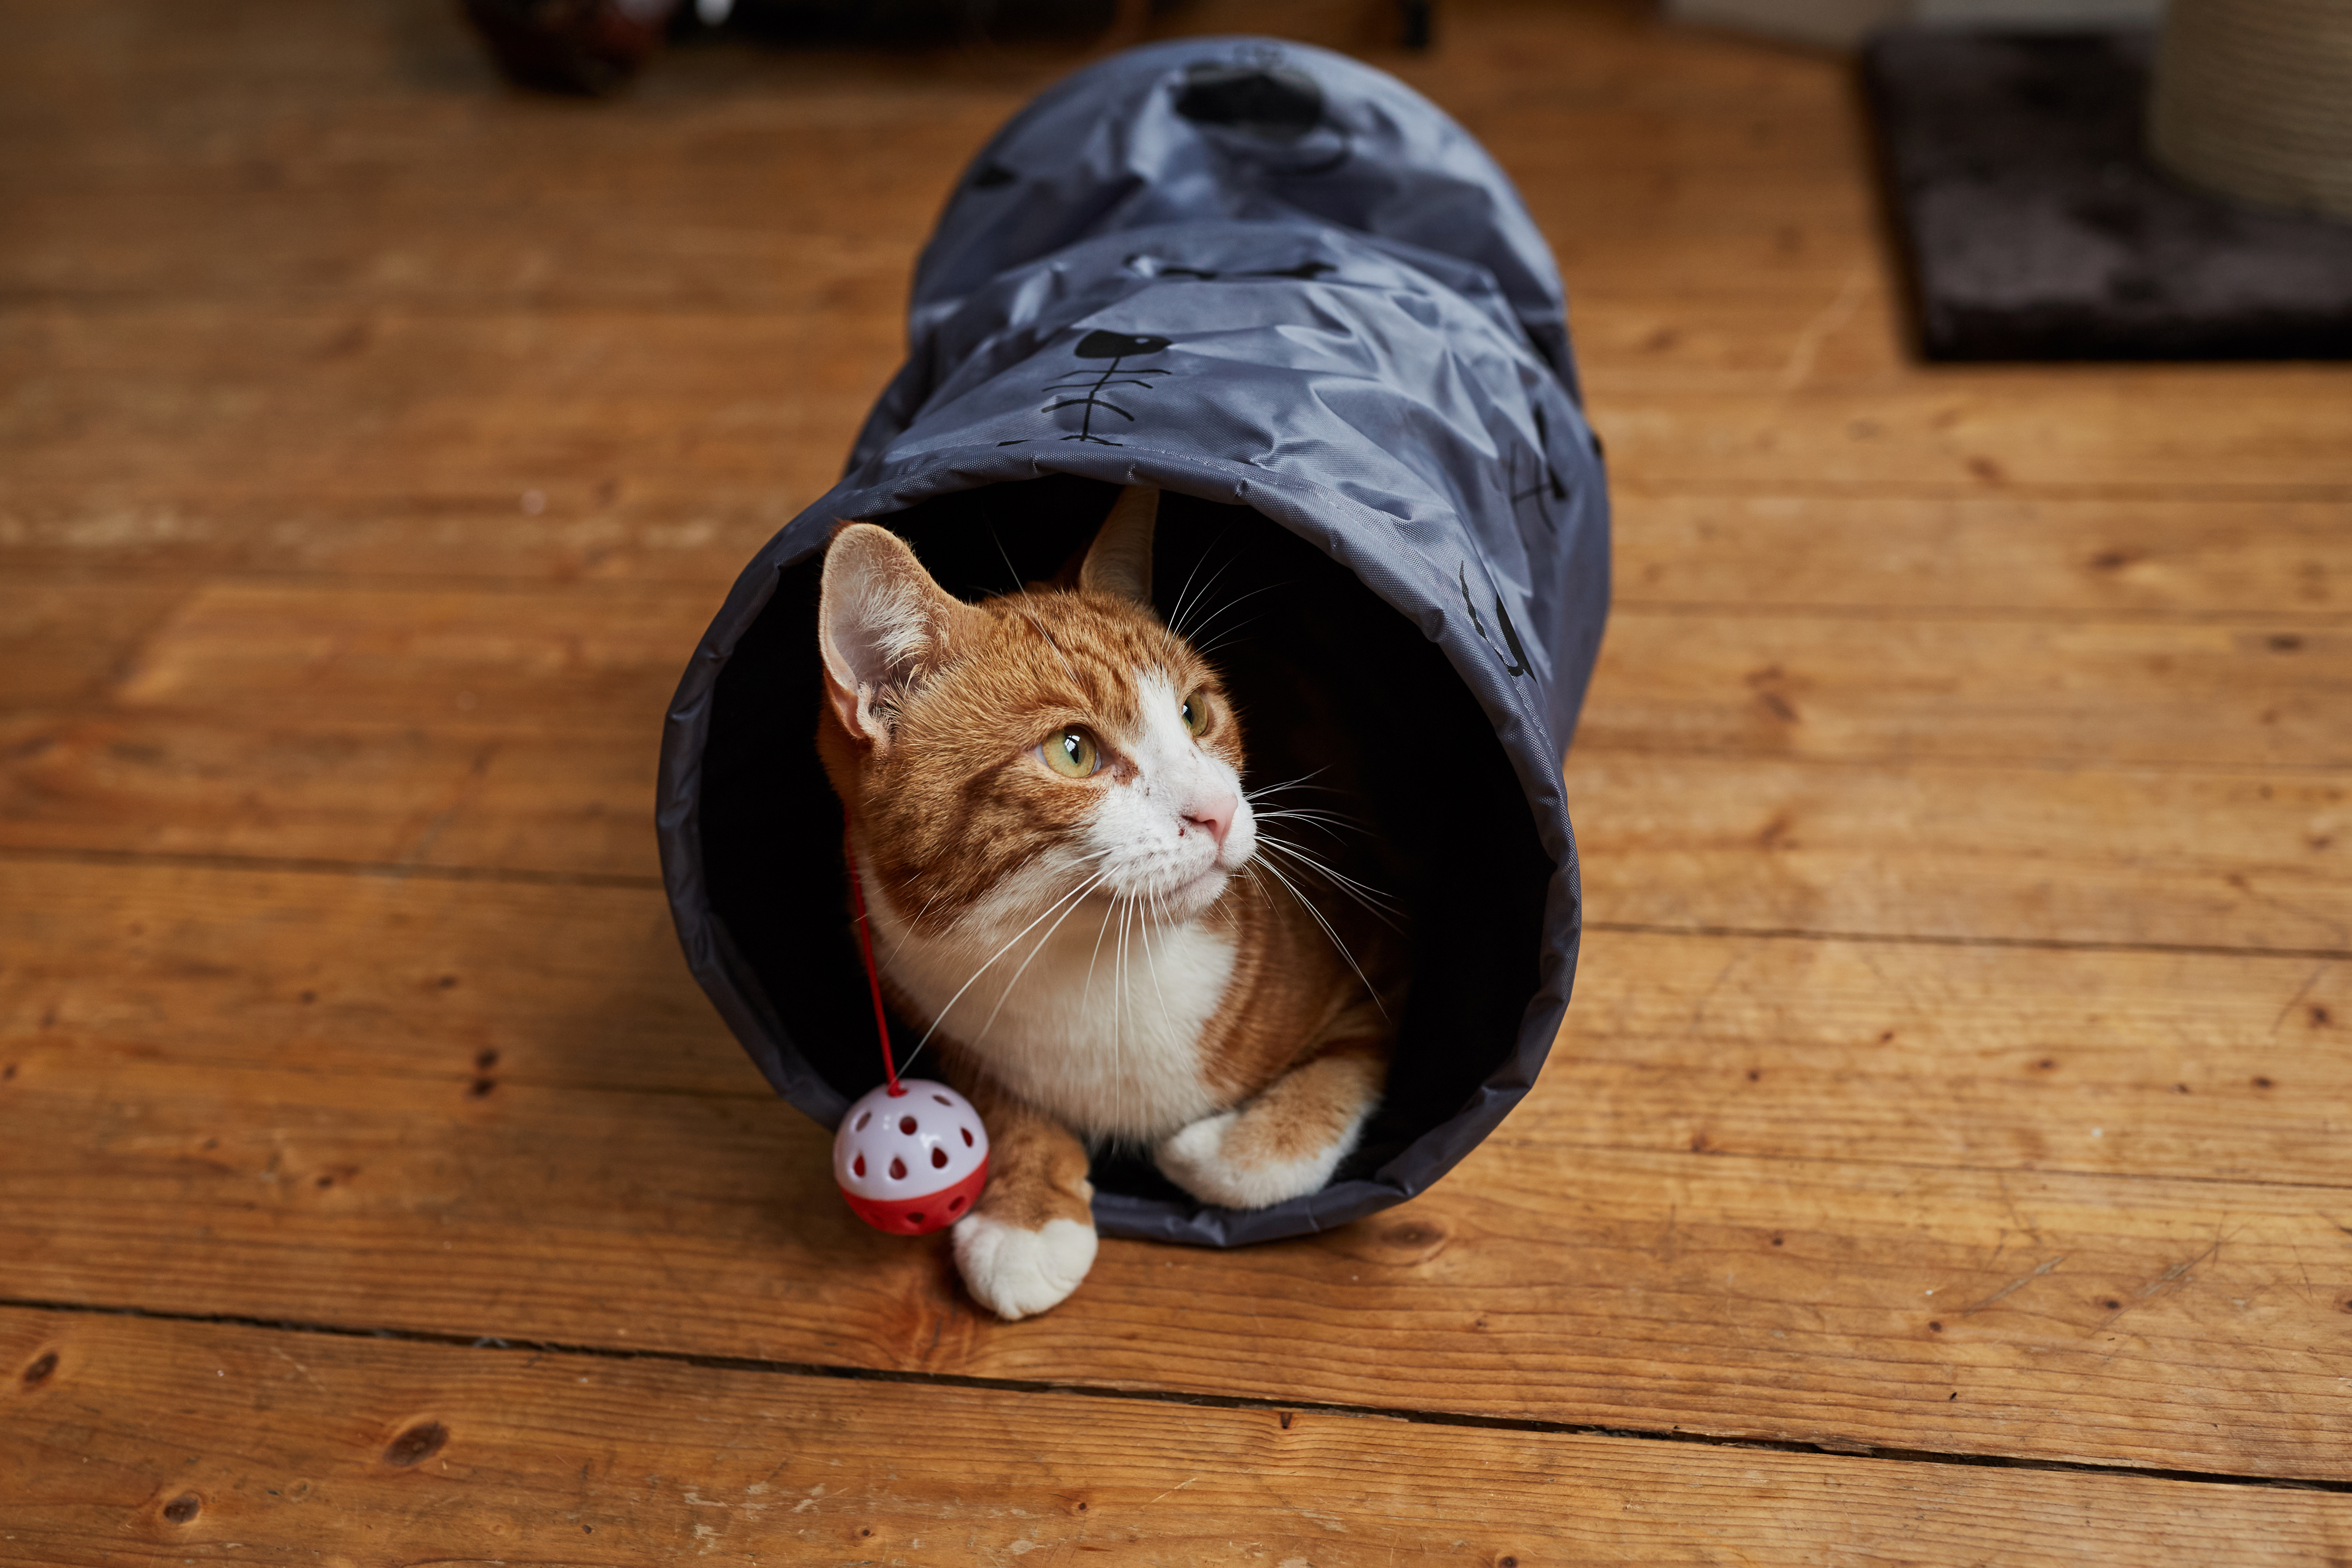 Make your house enriching for your cat